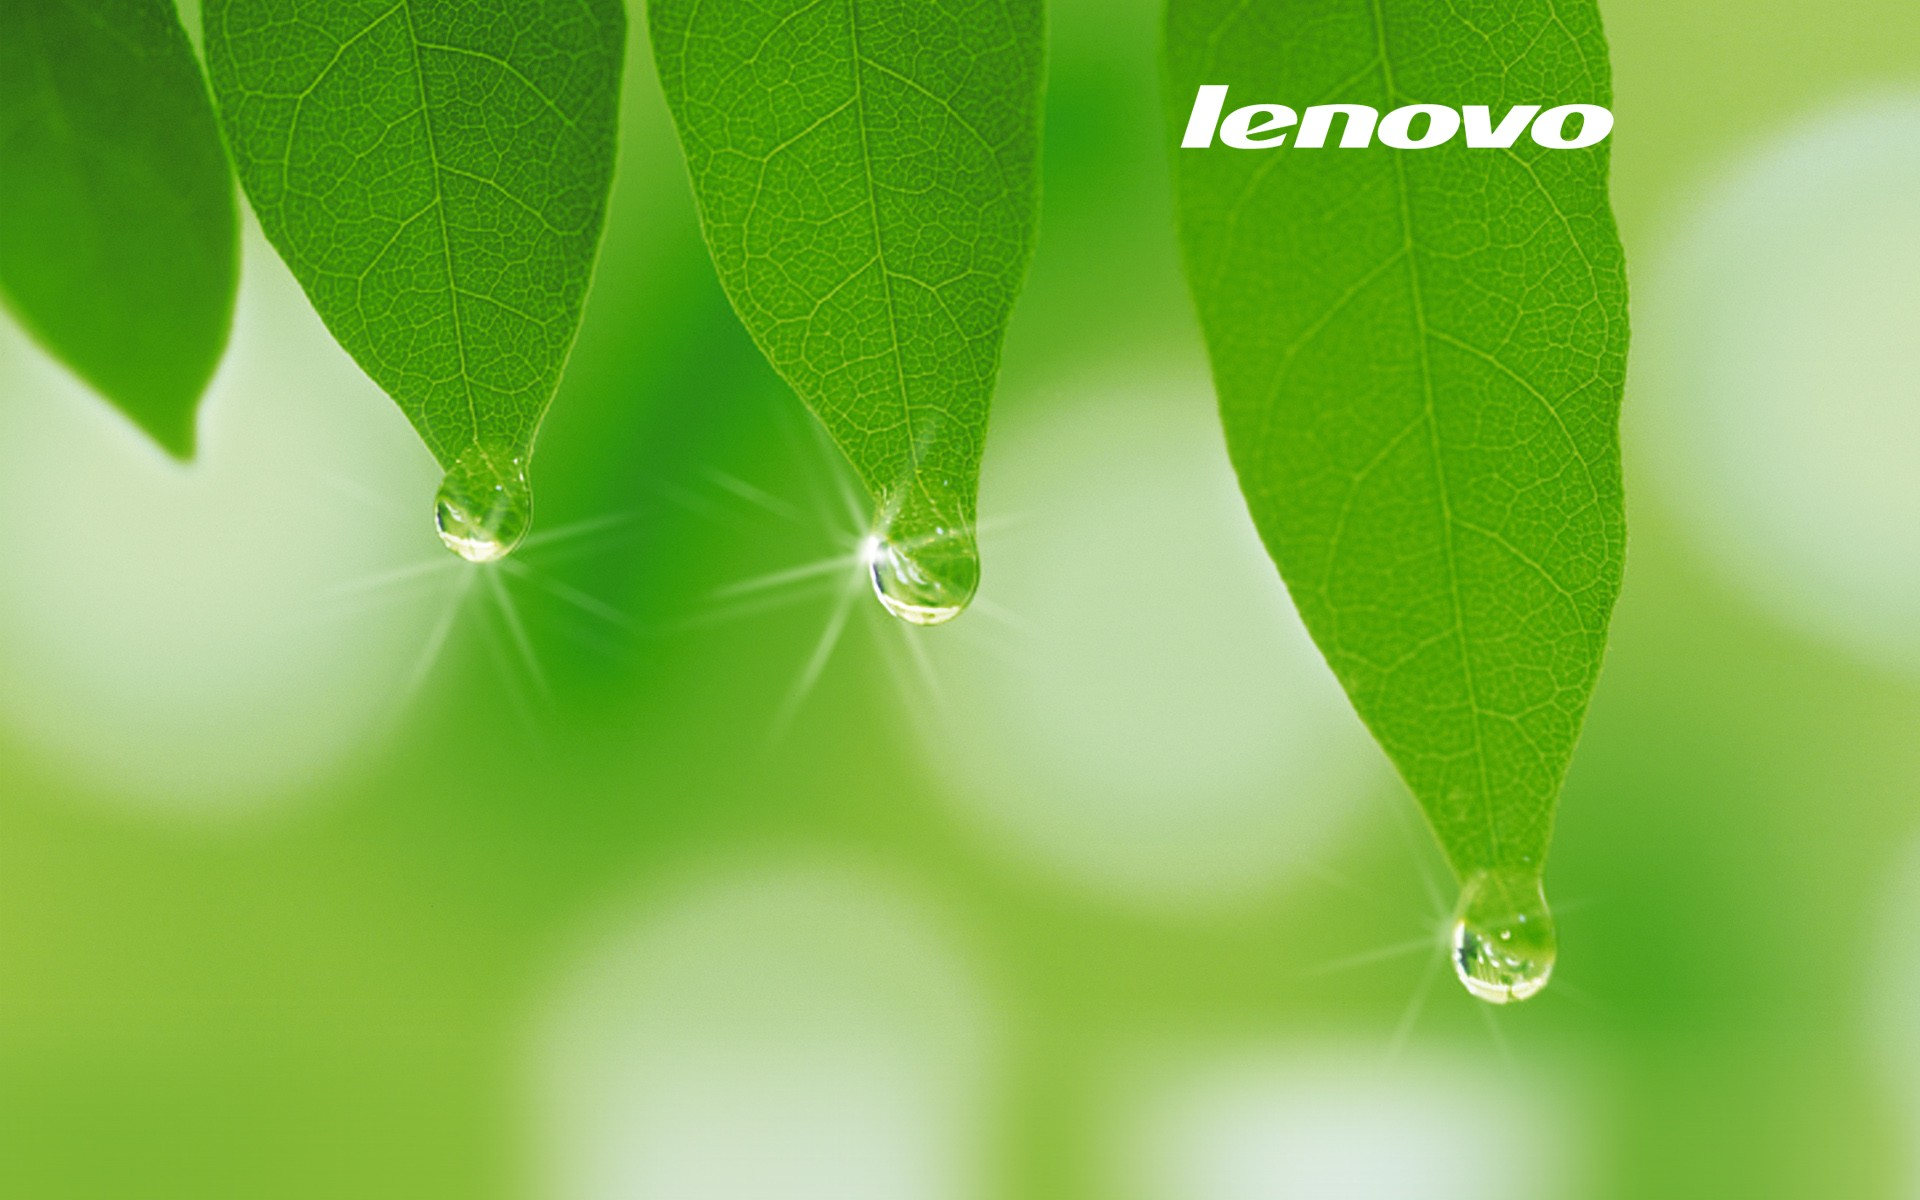 Free Lenovo Wallpaper